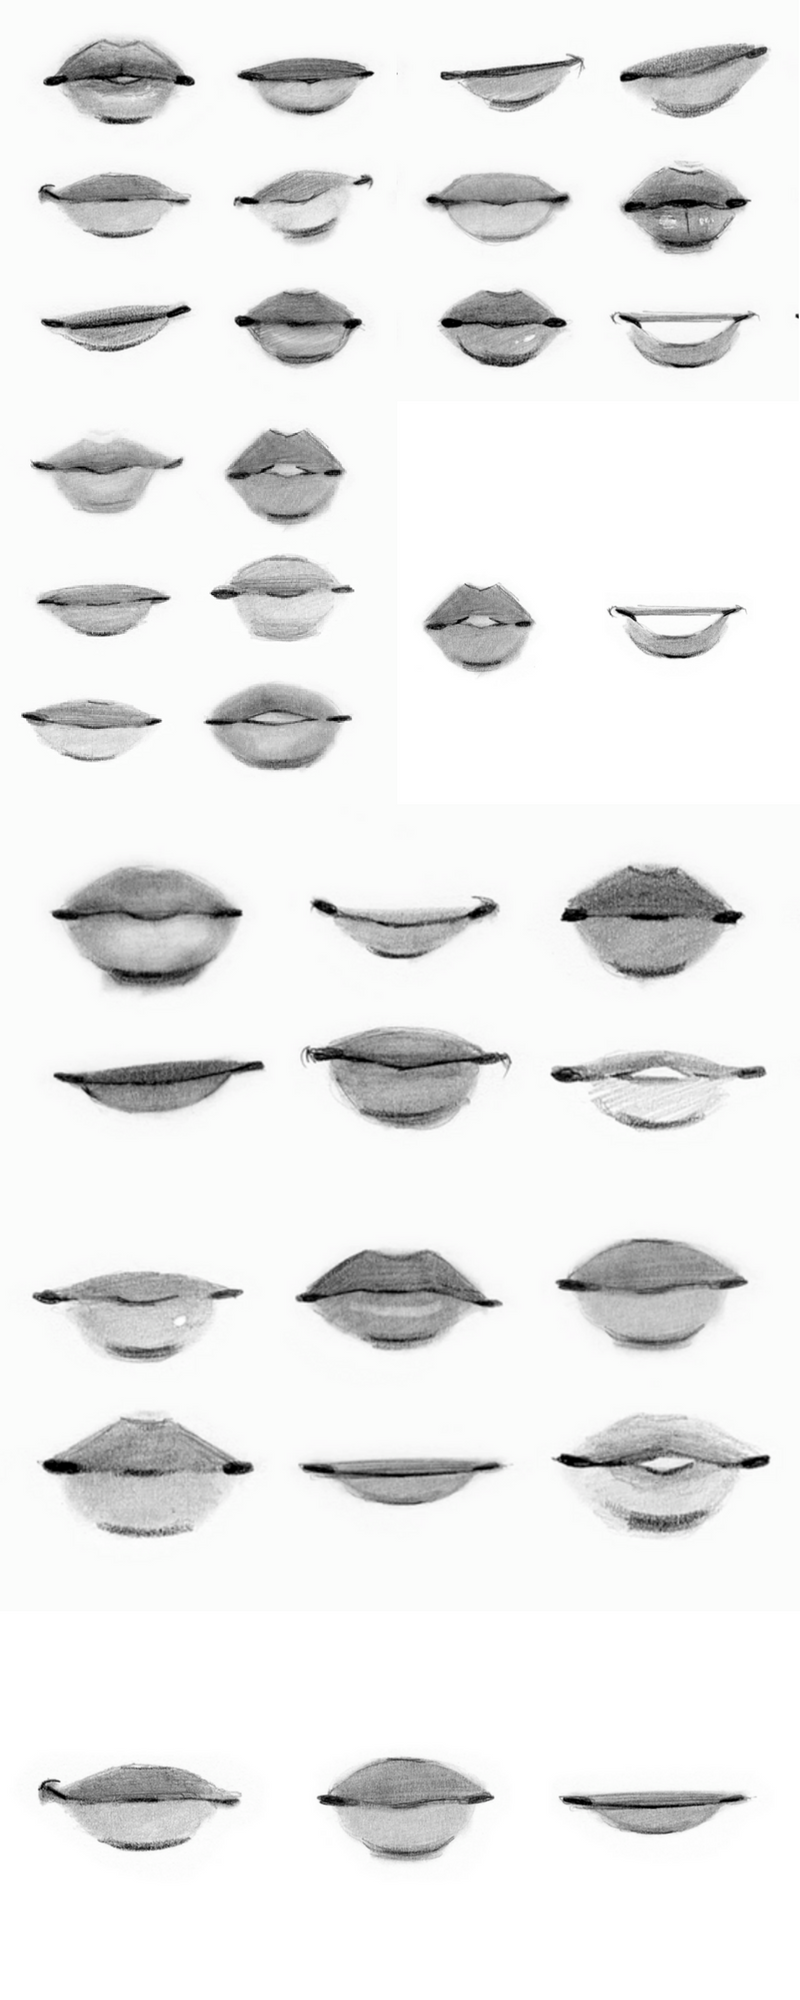 These are some mouth references from a class by gabrielle decesaris